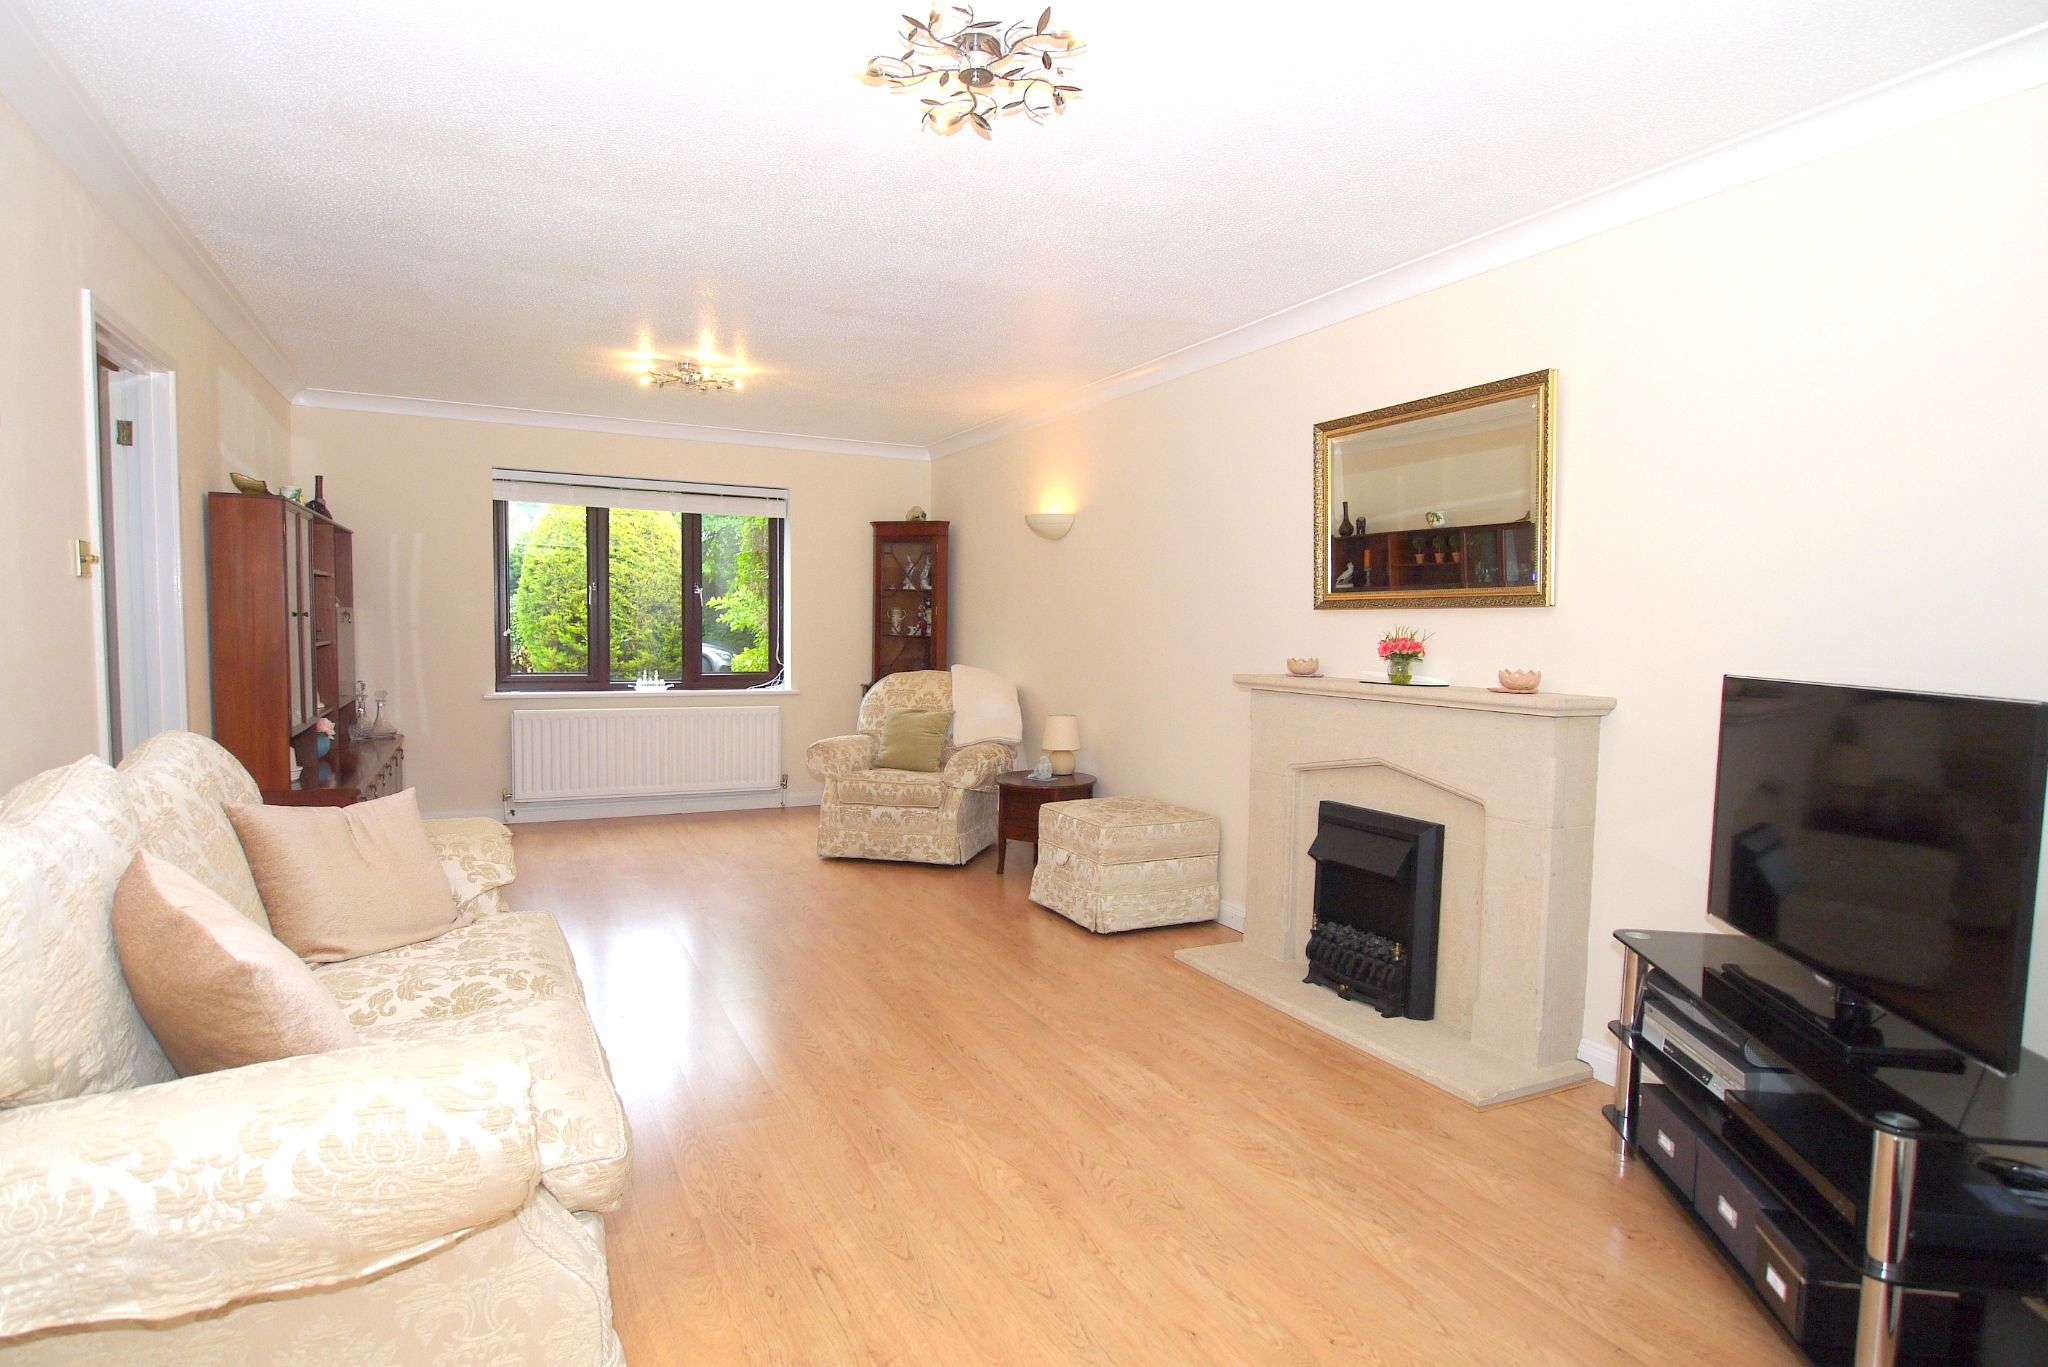 3 bedroom detached house For Sale in Sevenoaks - Photograph 2